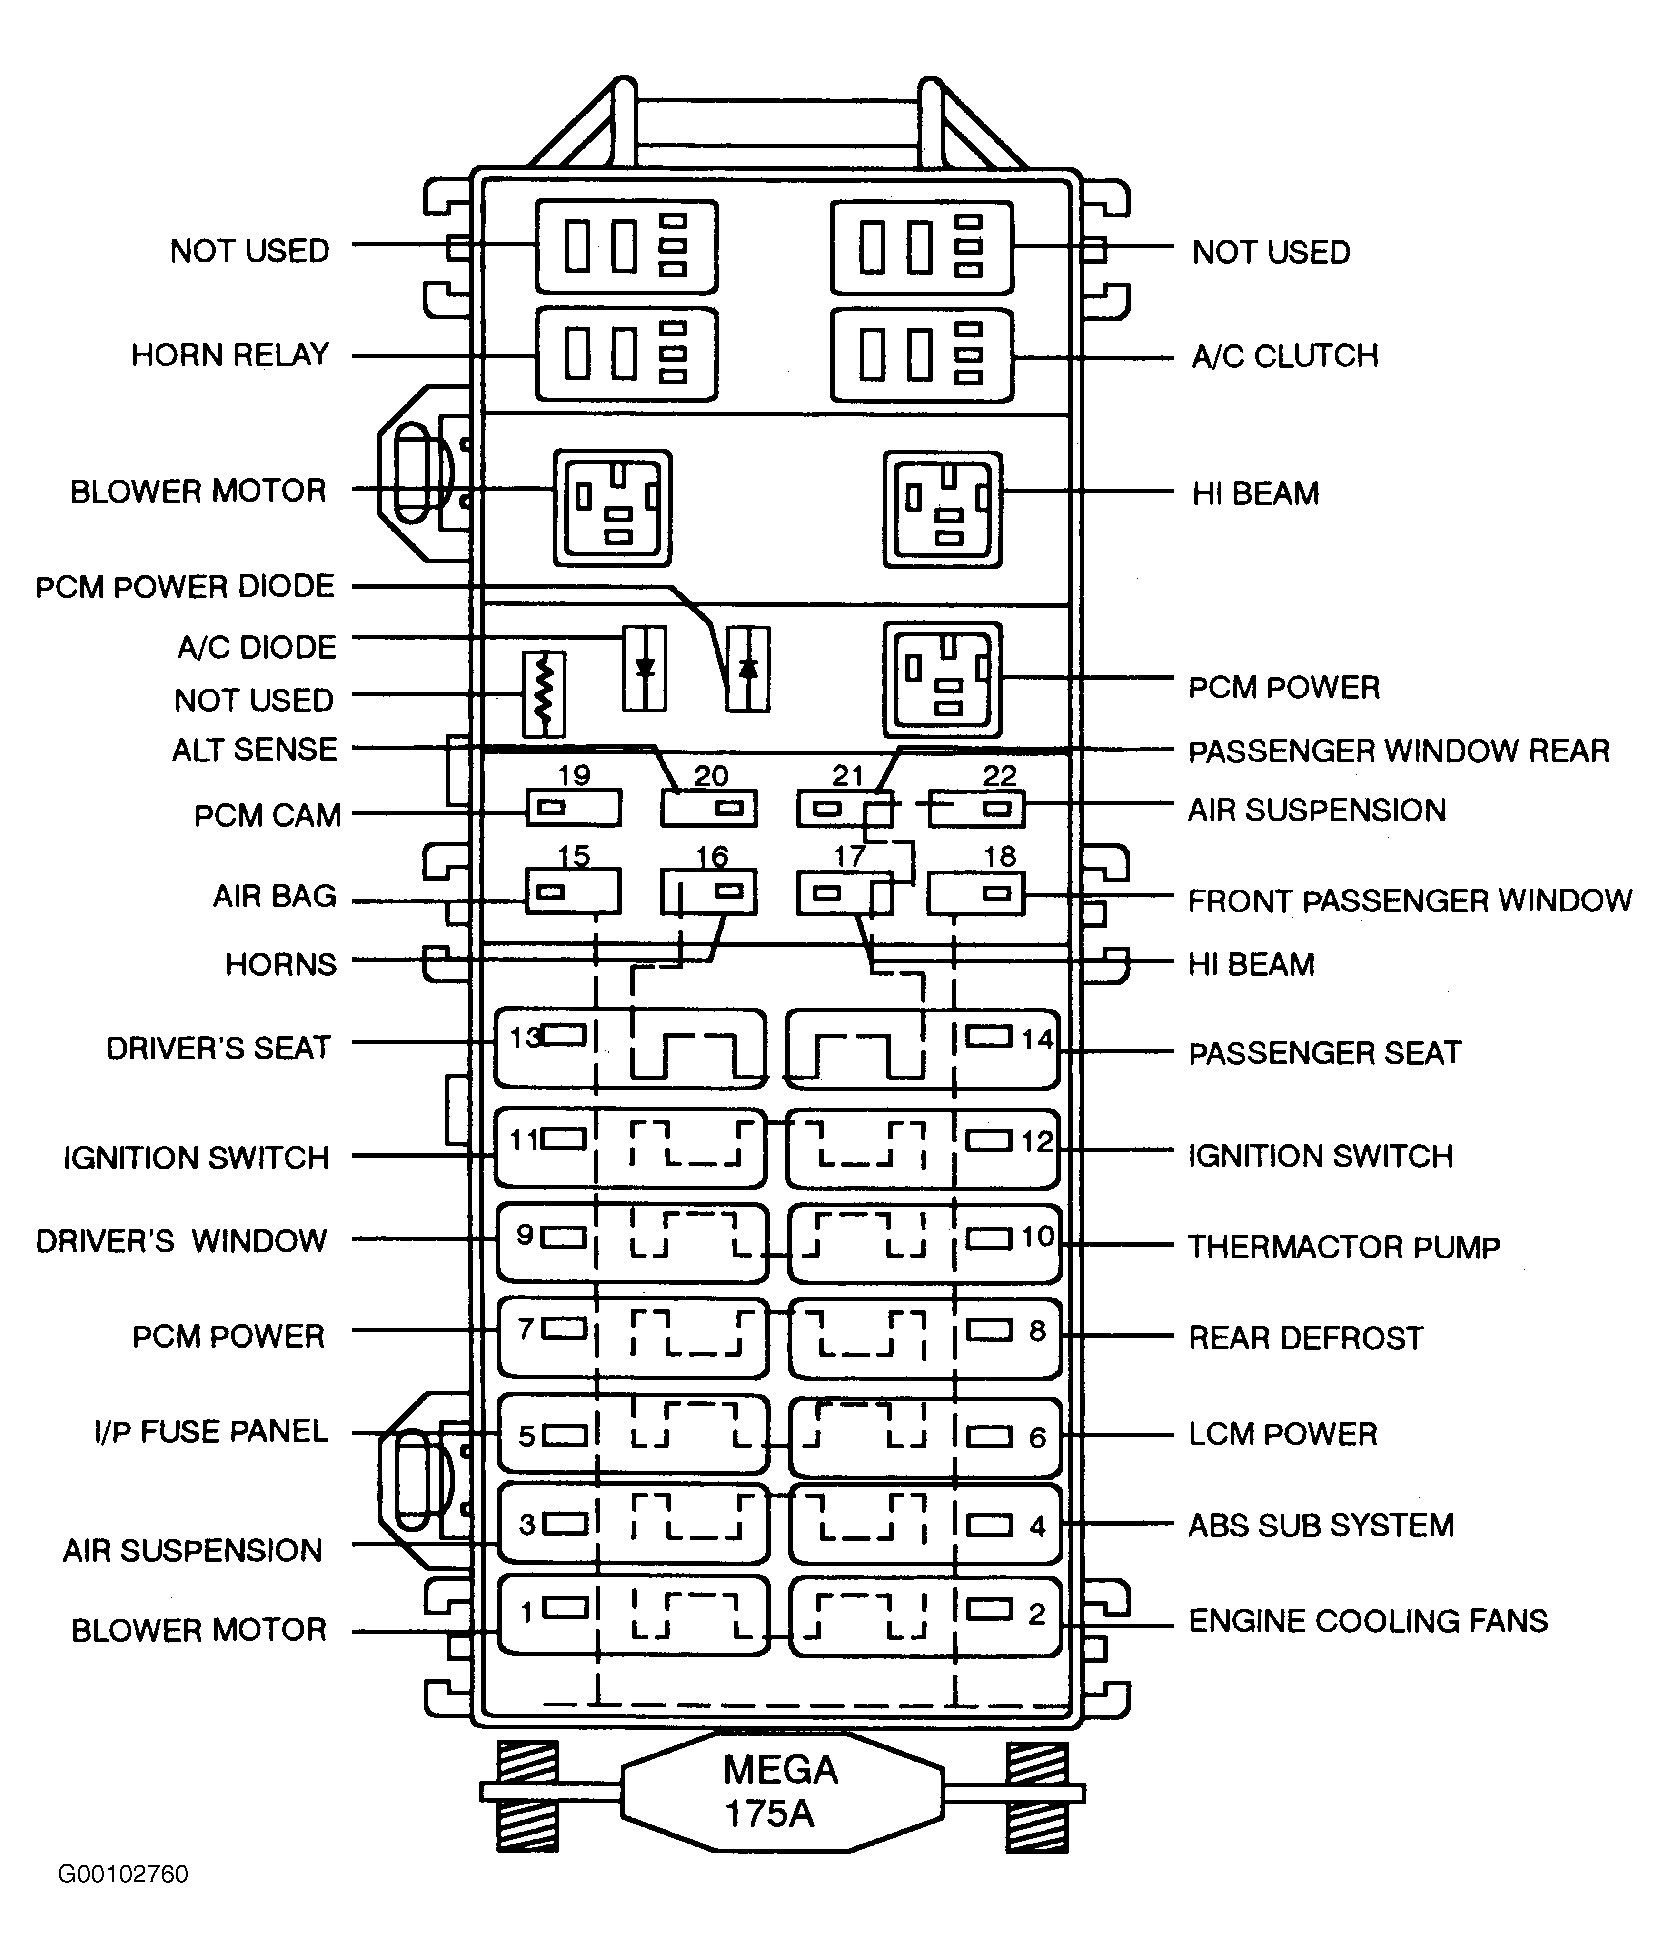 medium resolution of e46 320d fuse box diagram wiring library rh 10 dirtytalk camgirls de